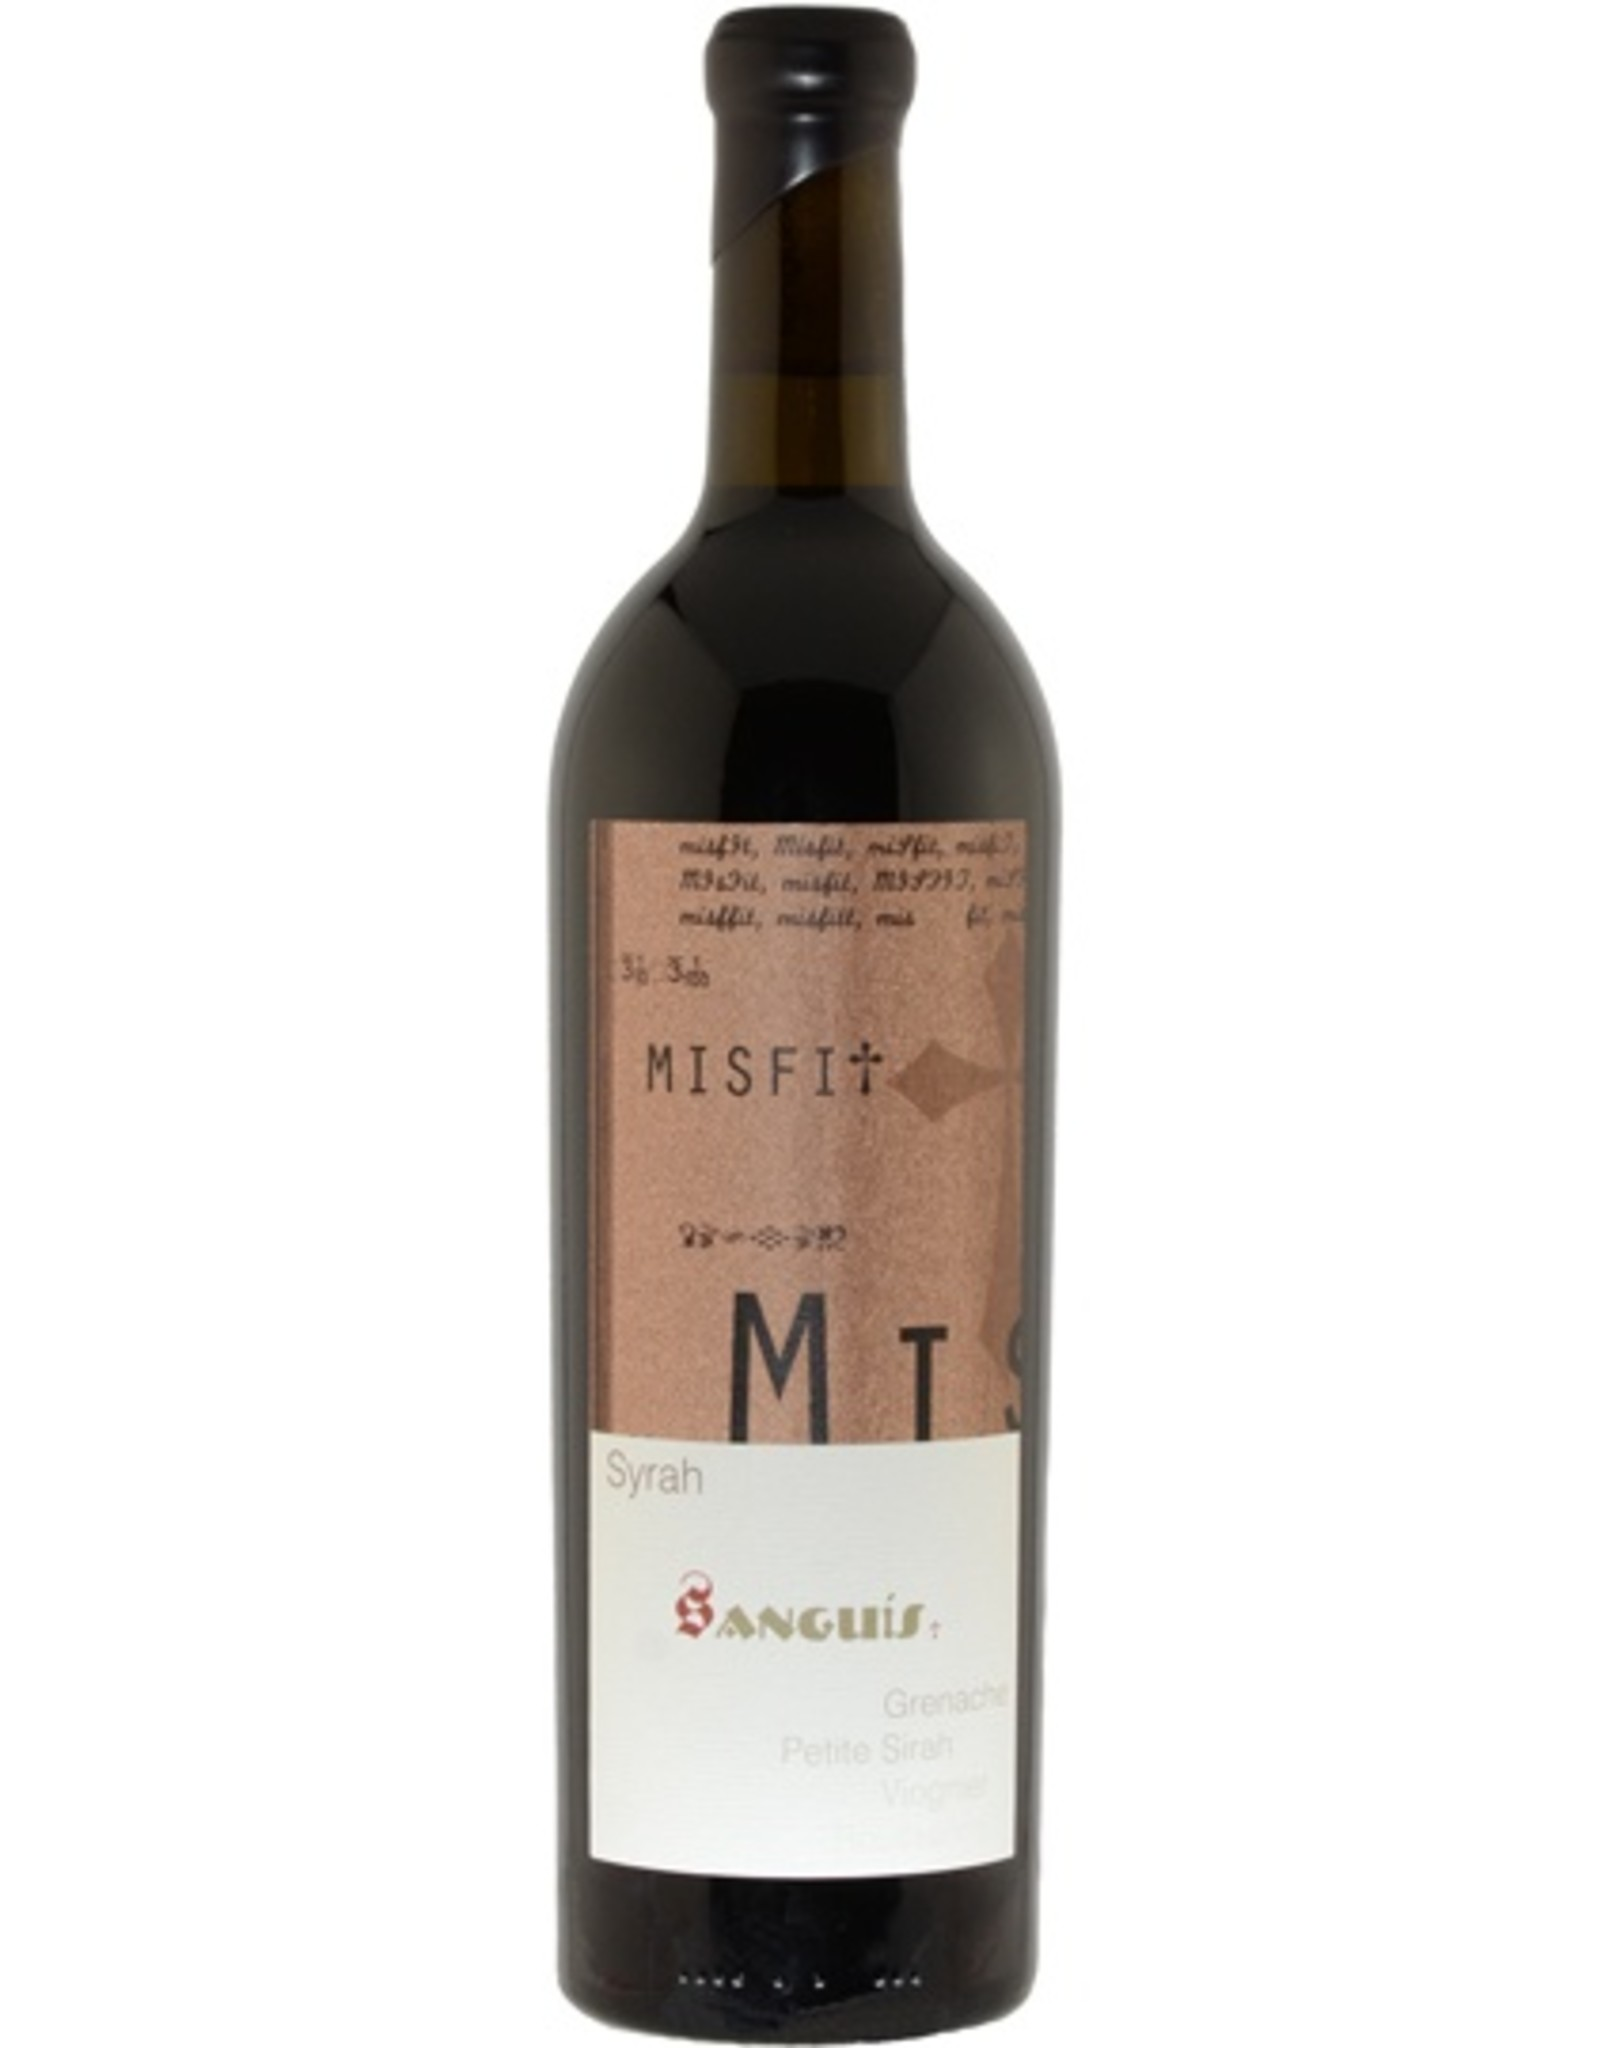 Red Wine 2013, Sanguis Misfit, Syrah Blend, Santa Barbara County, Central Coast, Califiornia, 15.2%, CT93, TW98